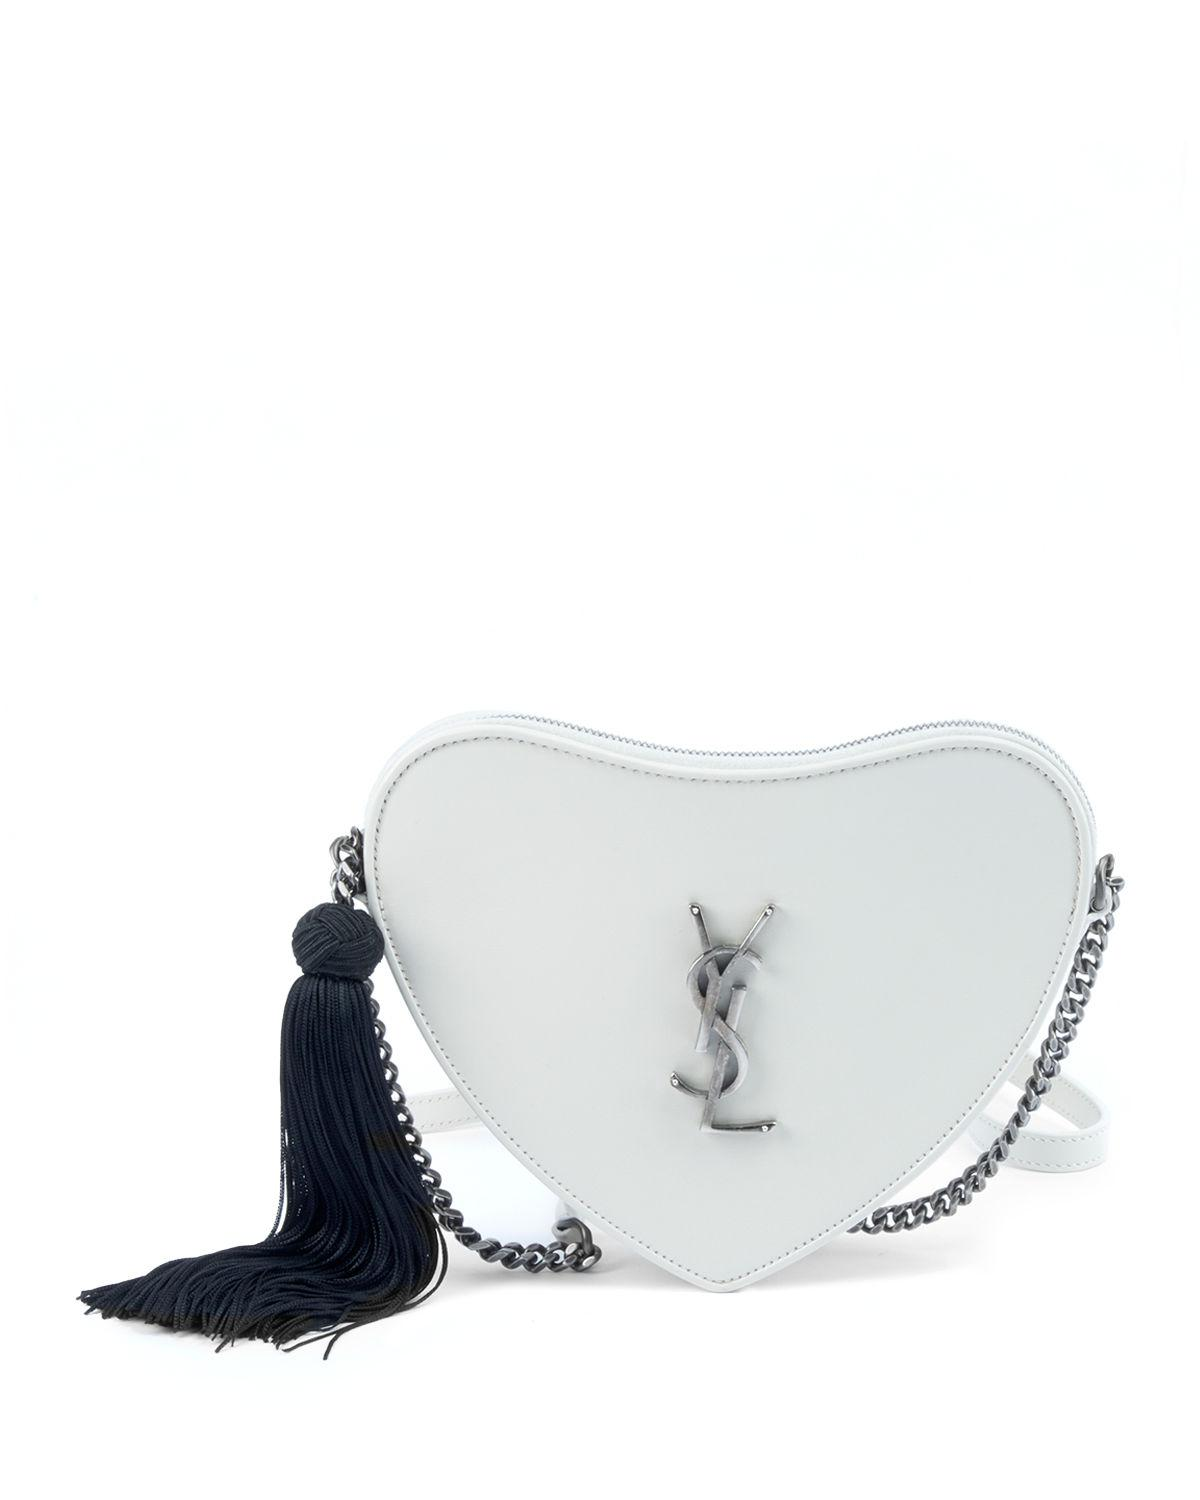 Saint Laurent Sac Coeur Monogram Ysl Heart Tassel Box Clutch Bag ... 507bf489ba3fc